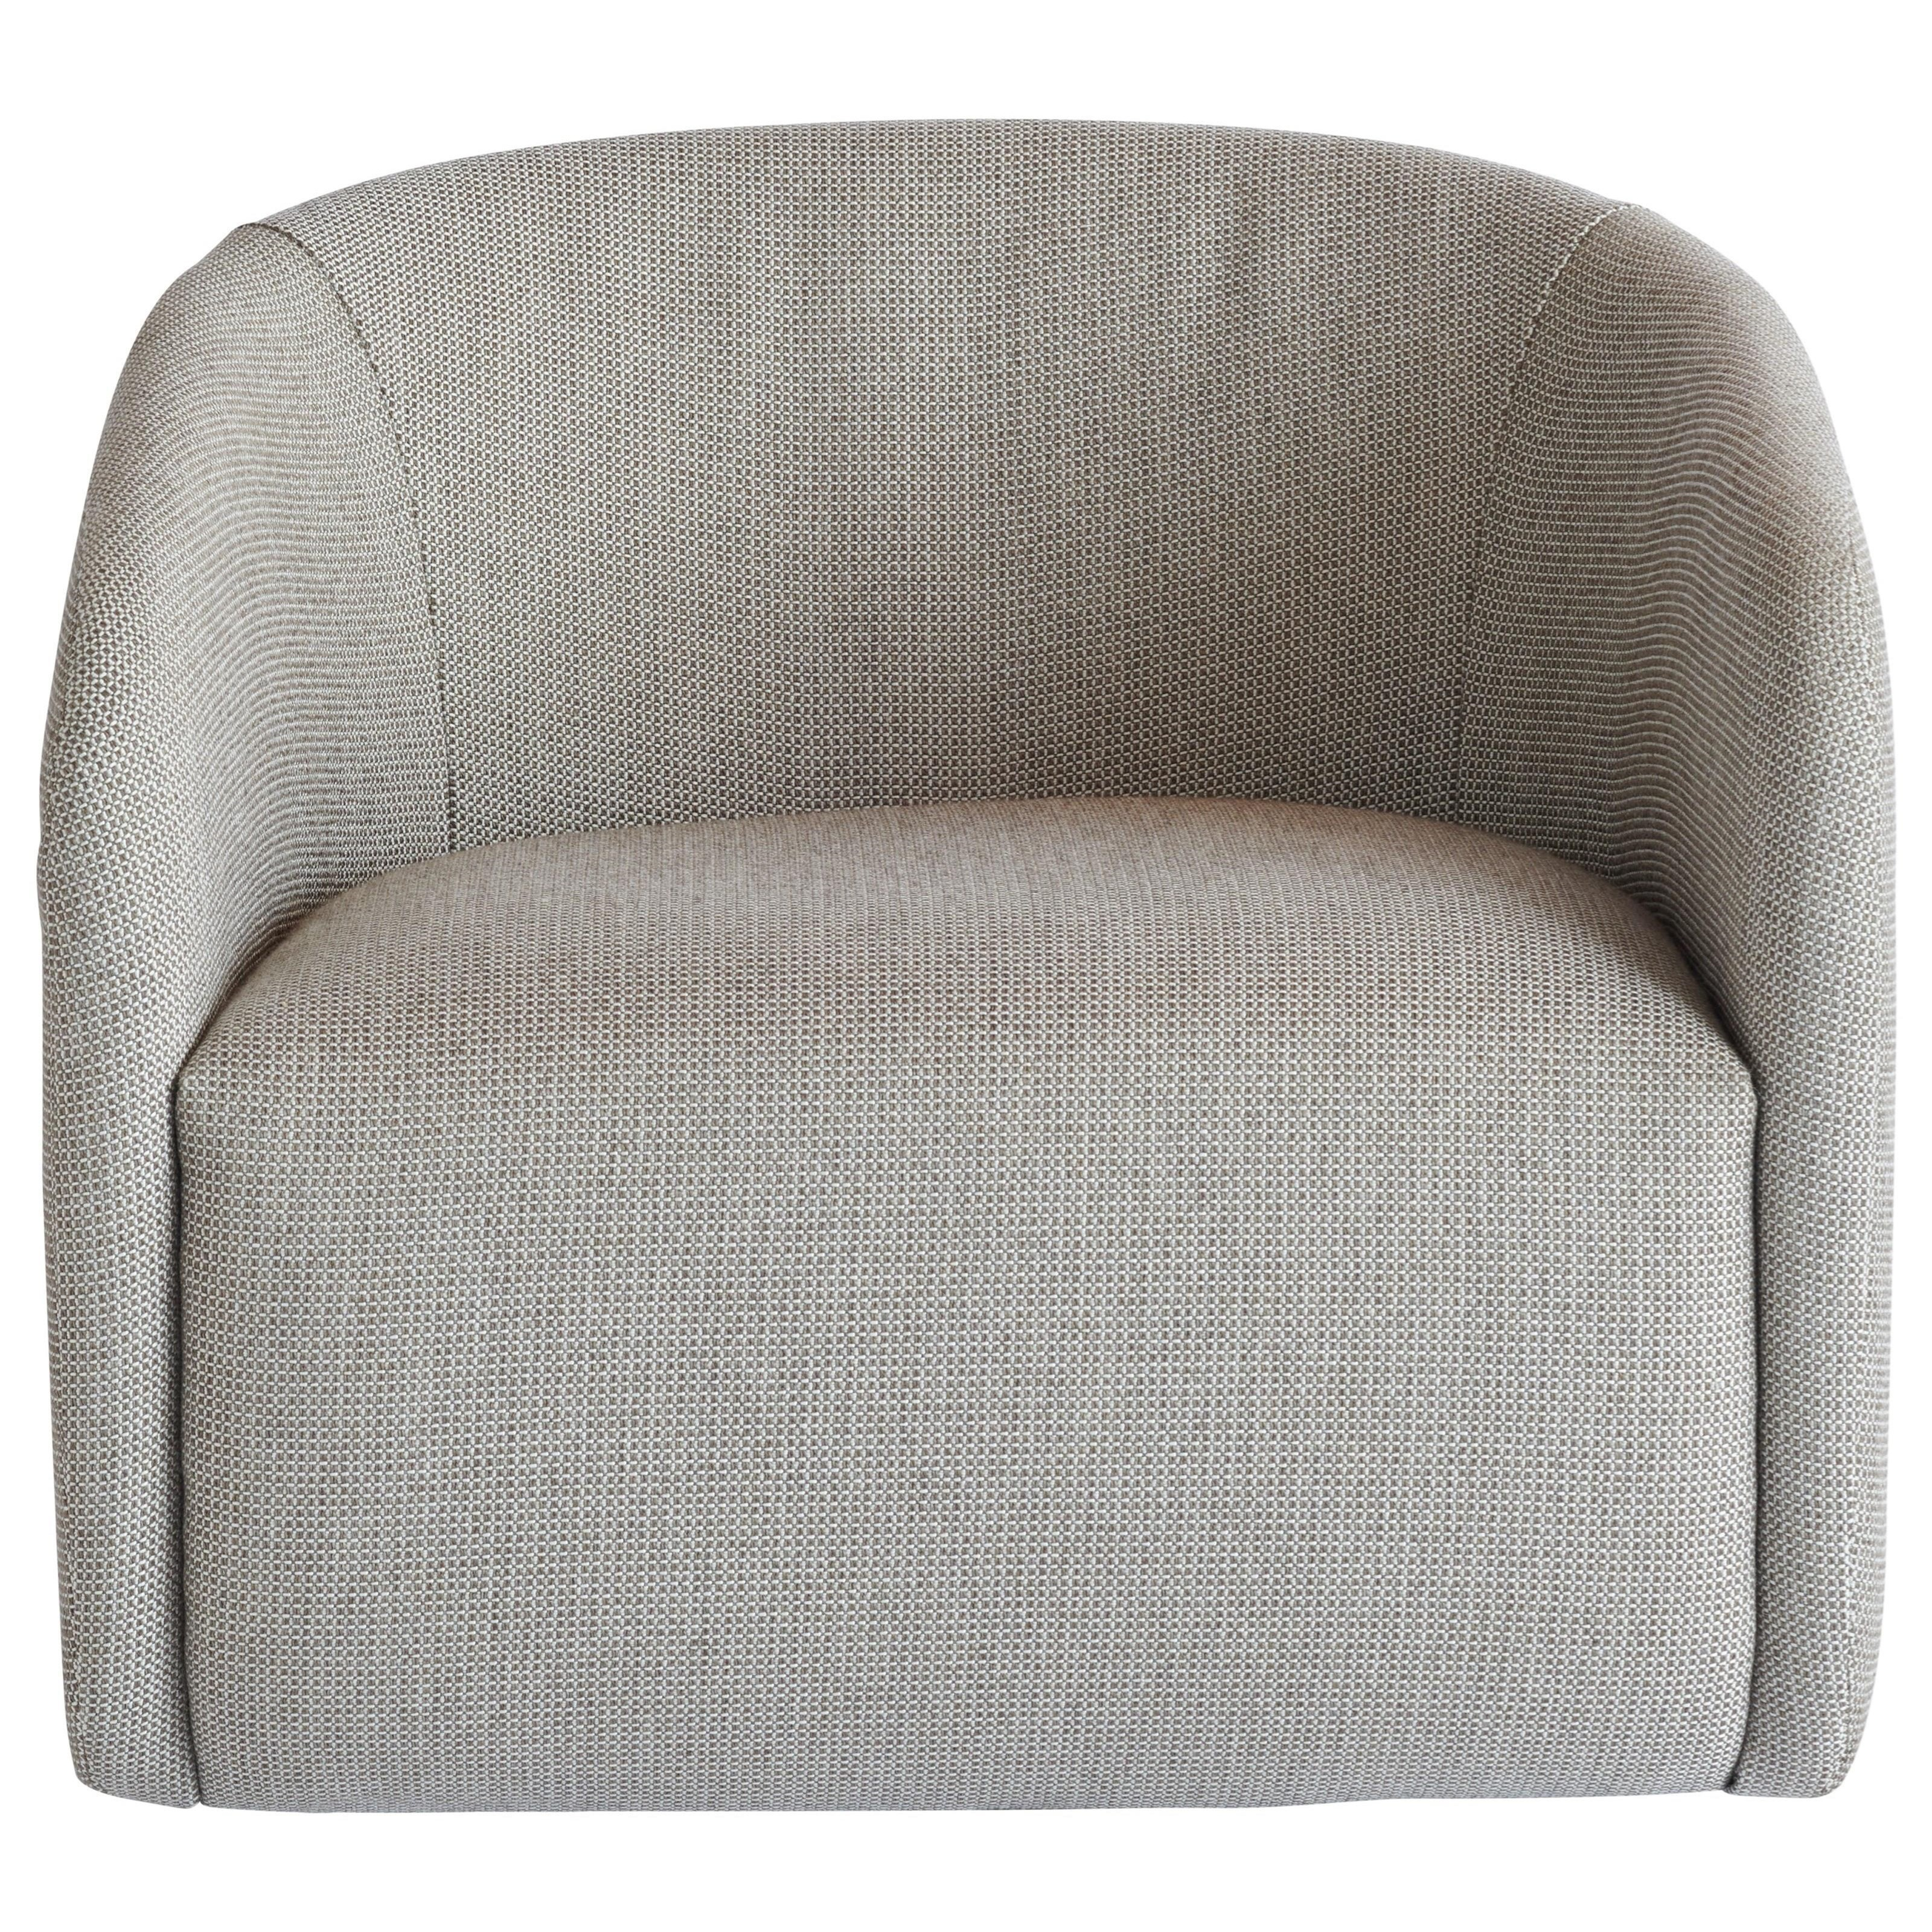 Nina Magon Matisse Swivel Chair by Universal at Baer's Furniture